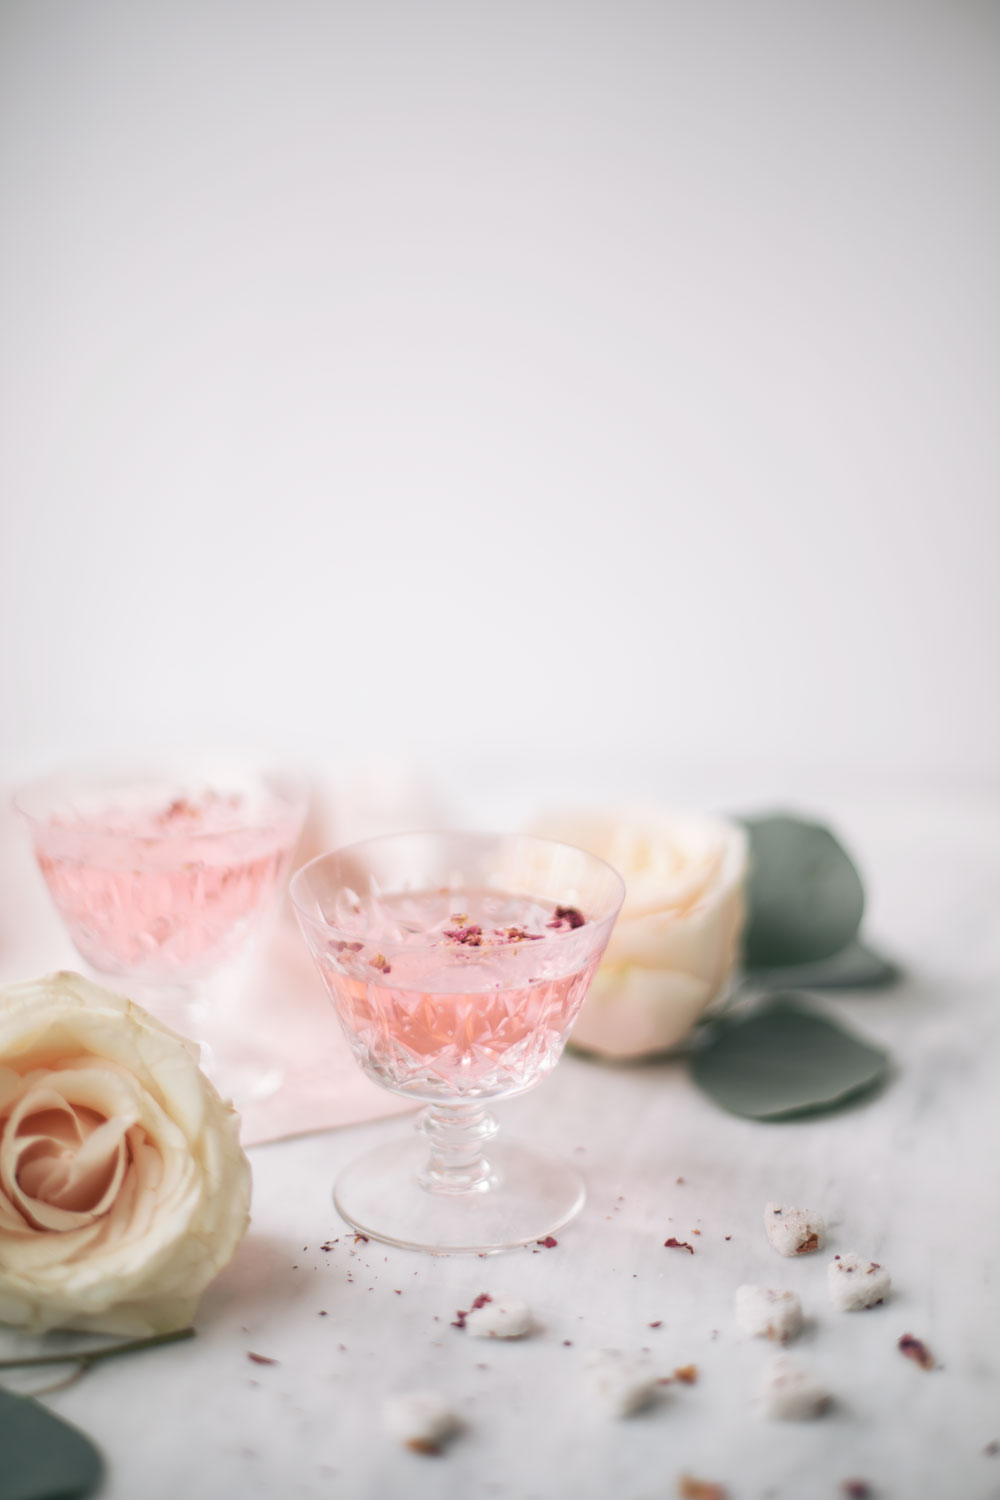 rose water cocktail. pink cocktail. how to make a rose cocktail. rose infused cocktail